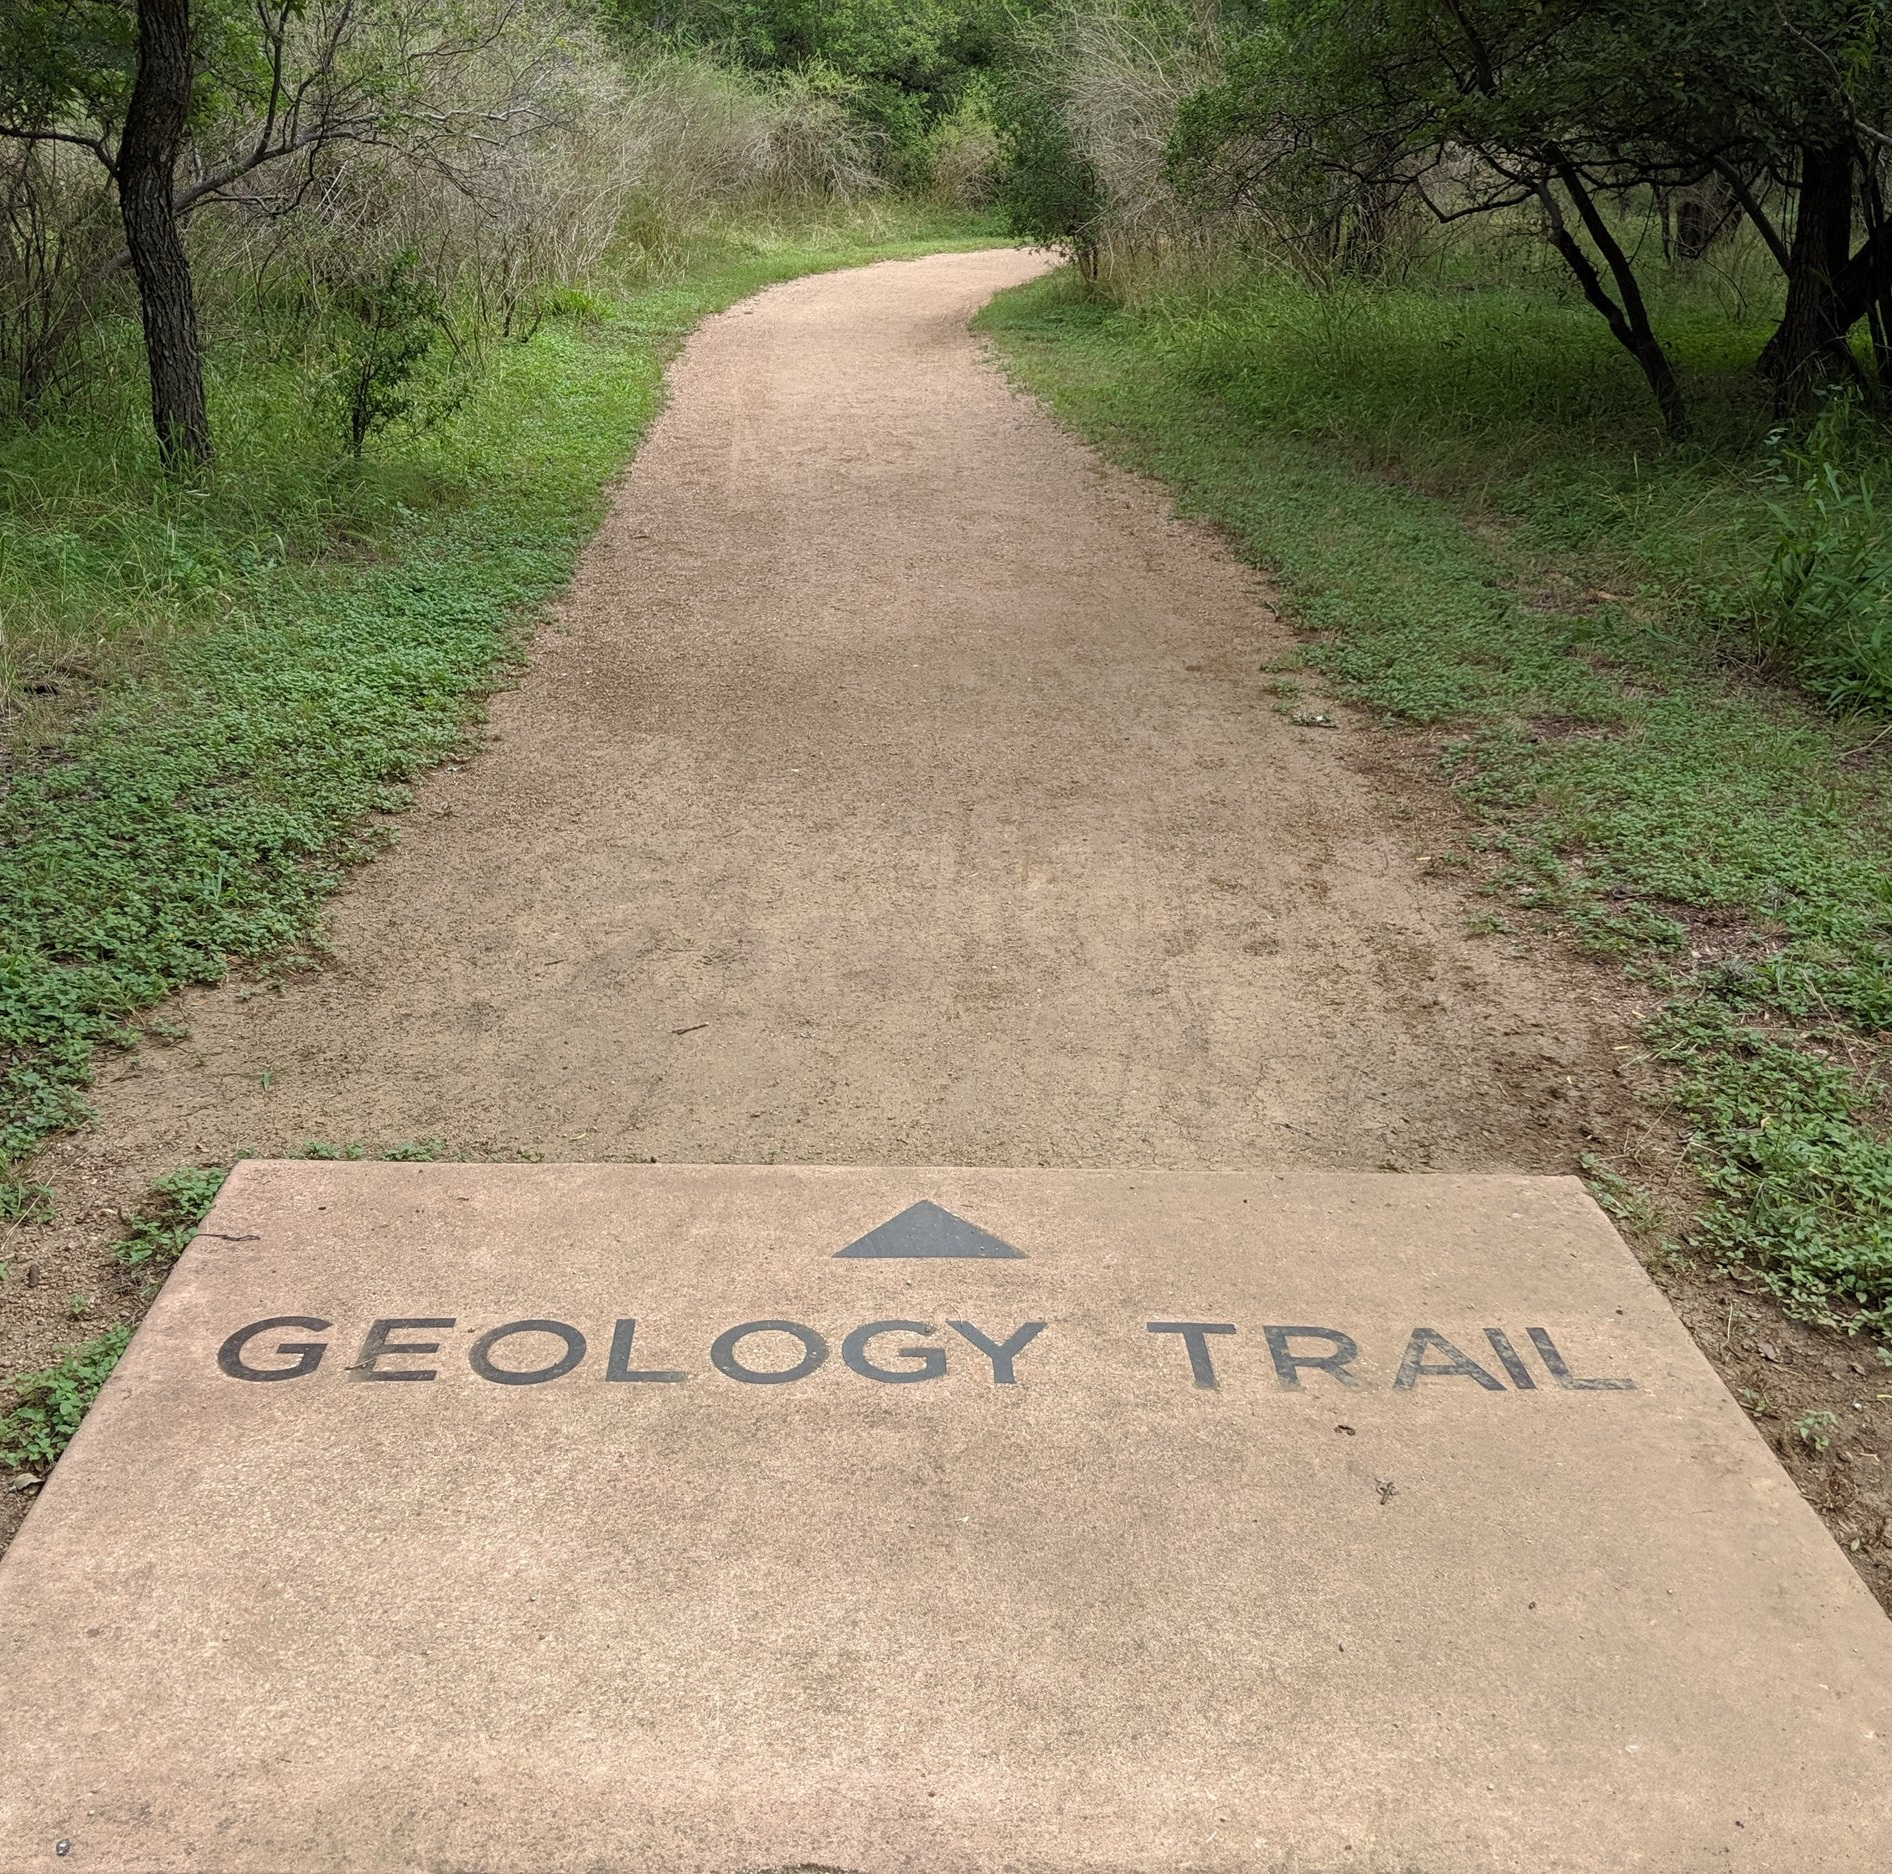 Miles of trails - PHP East has 2.75 miles of trails, the Water Loop and Geology Trail, and connects to the greater Salado Creek Greenway trail system. PHP West has 4.5 miles of trails, including the Savanna Loop and Oak Loop.There are no trash cans or water fountains on the trails. Please pack it in and pack it out!